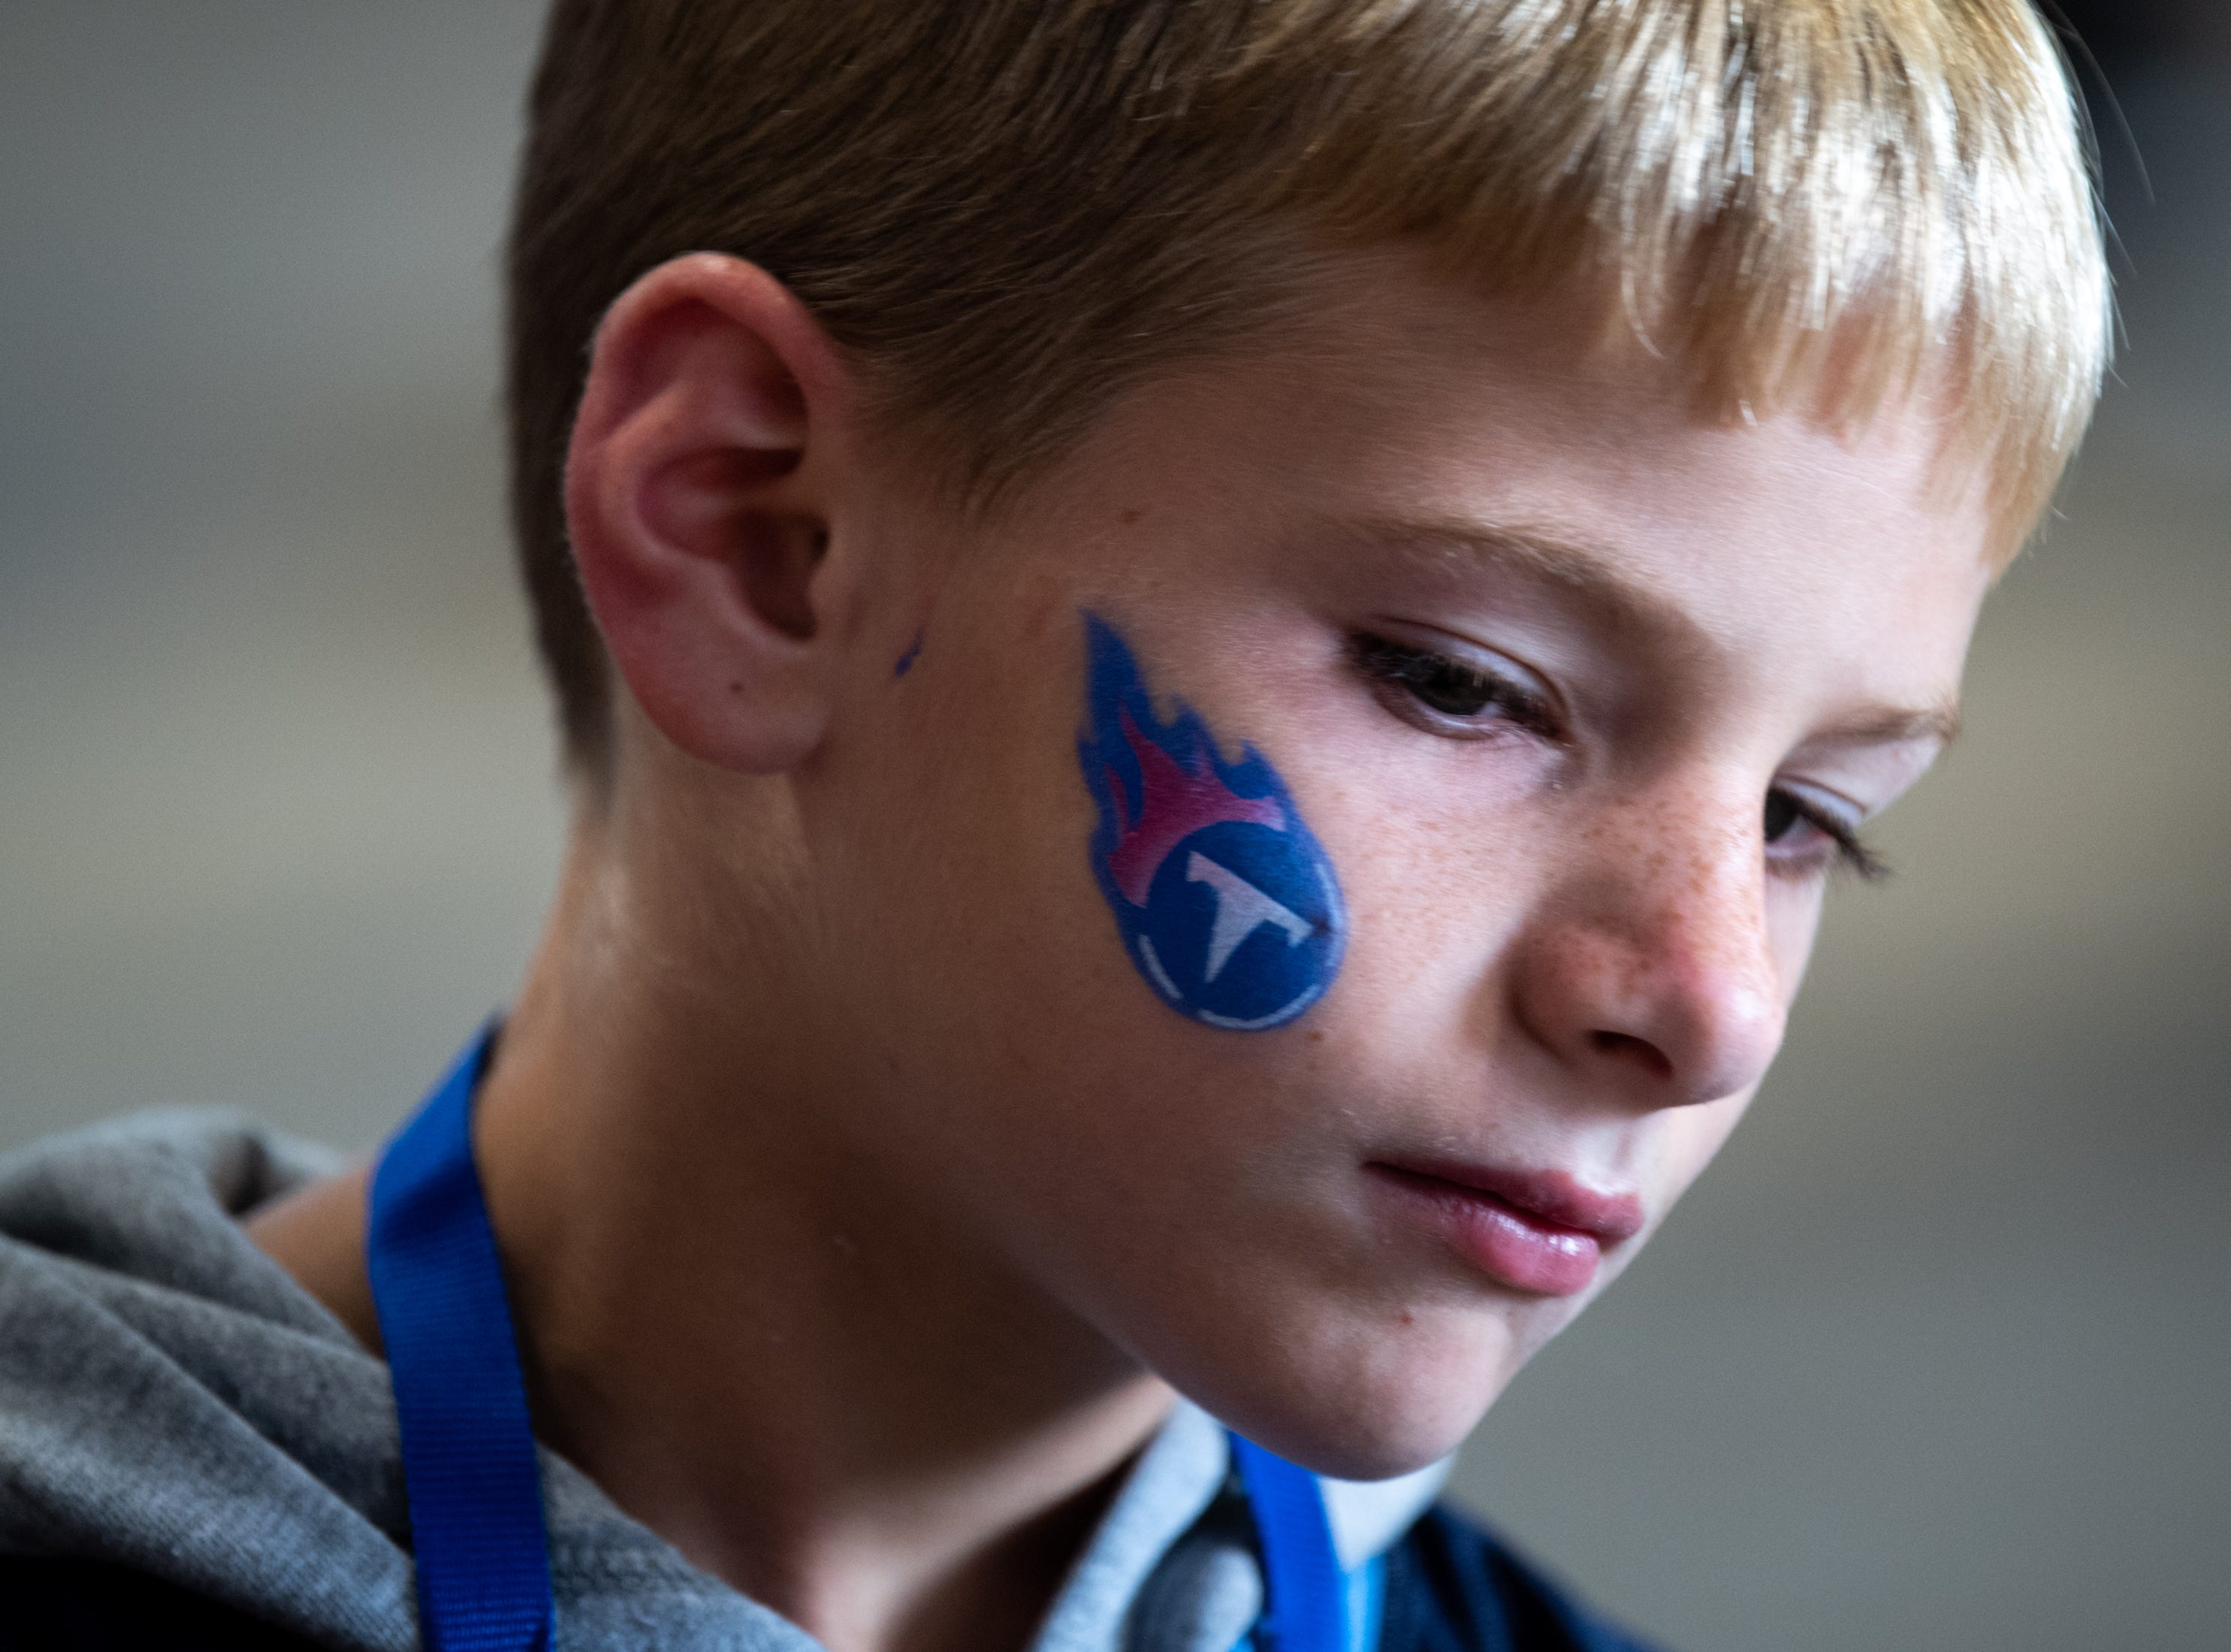 Connor Greene, 7, has his face painted before the game between the Tennessee Titans and the Baltimore Ravens at Nissan Stadium in Nashville, Tenn., Sunday, Oct. 14, 2018.